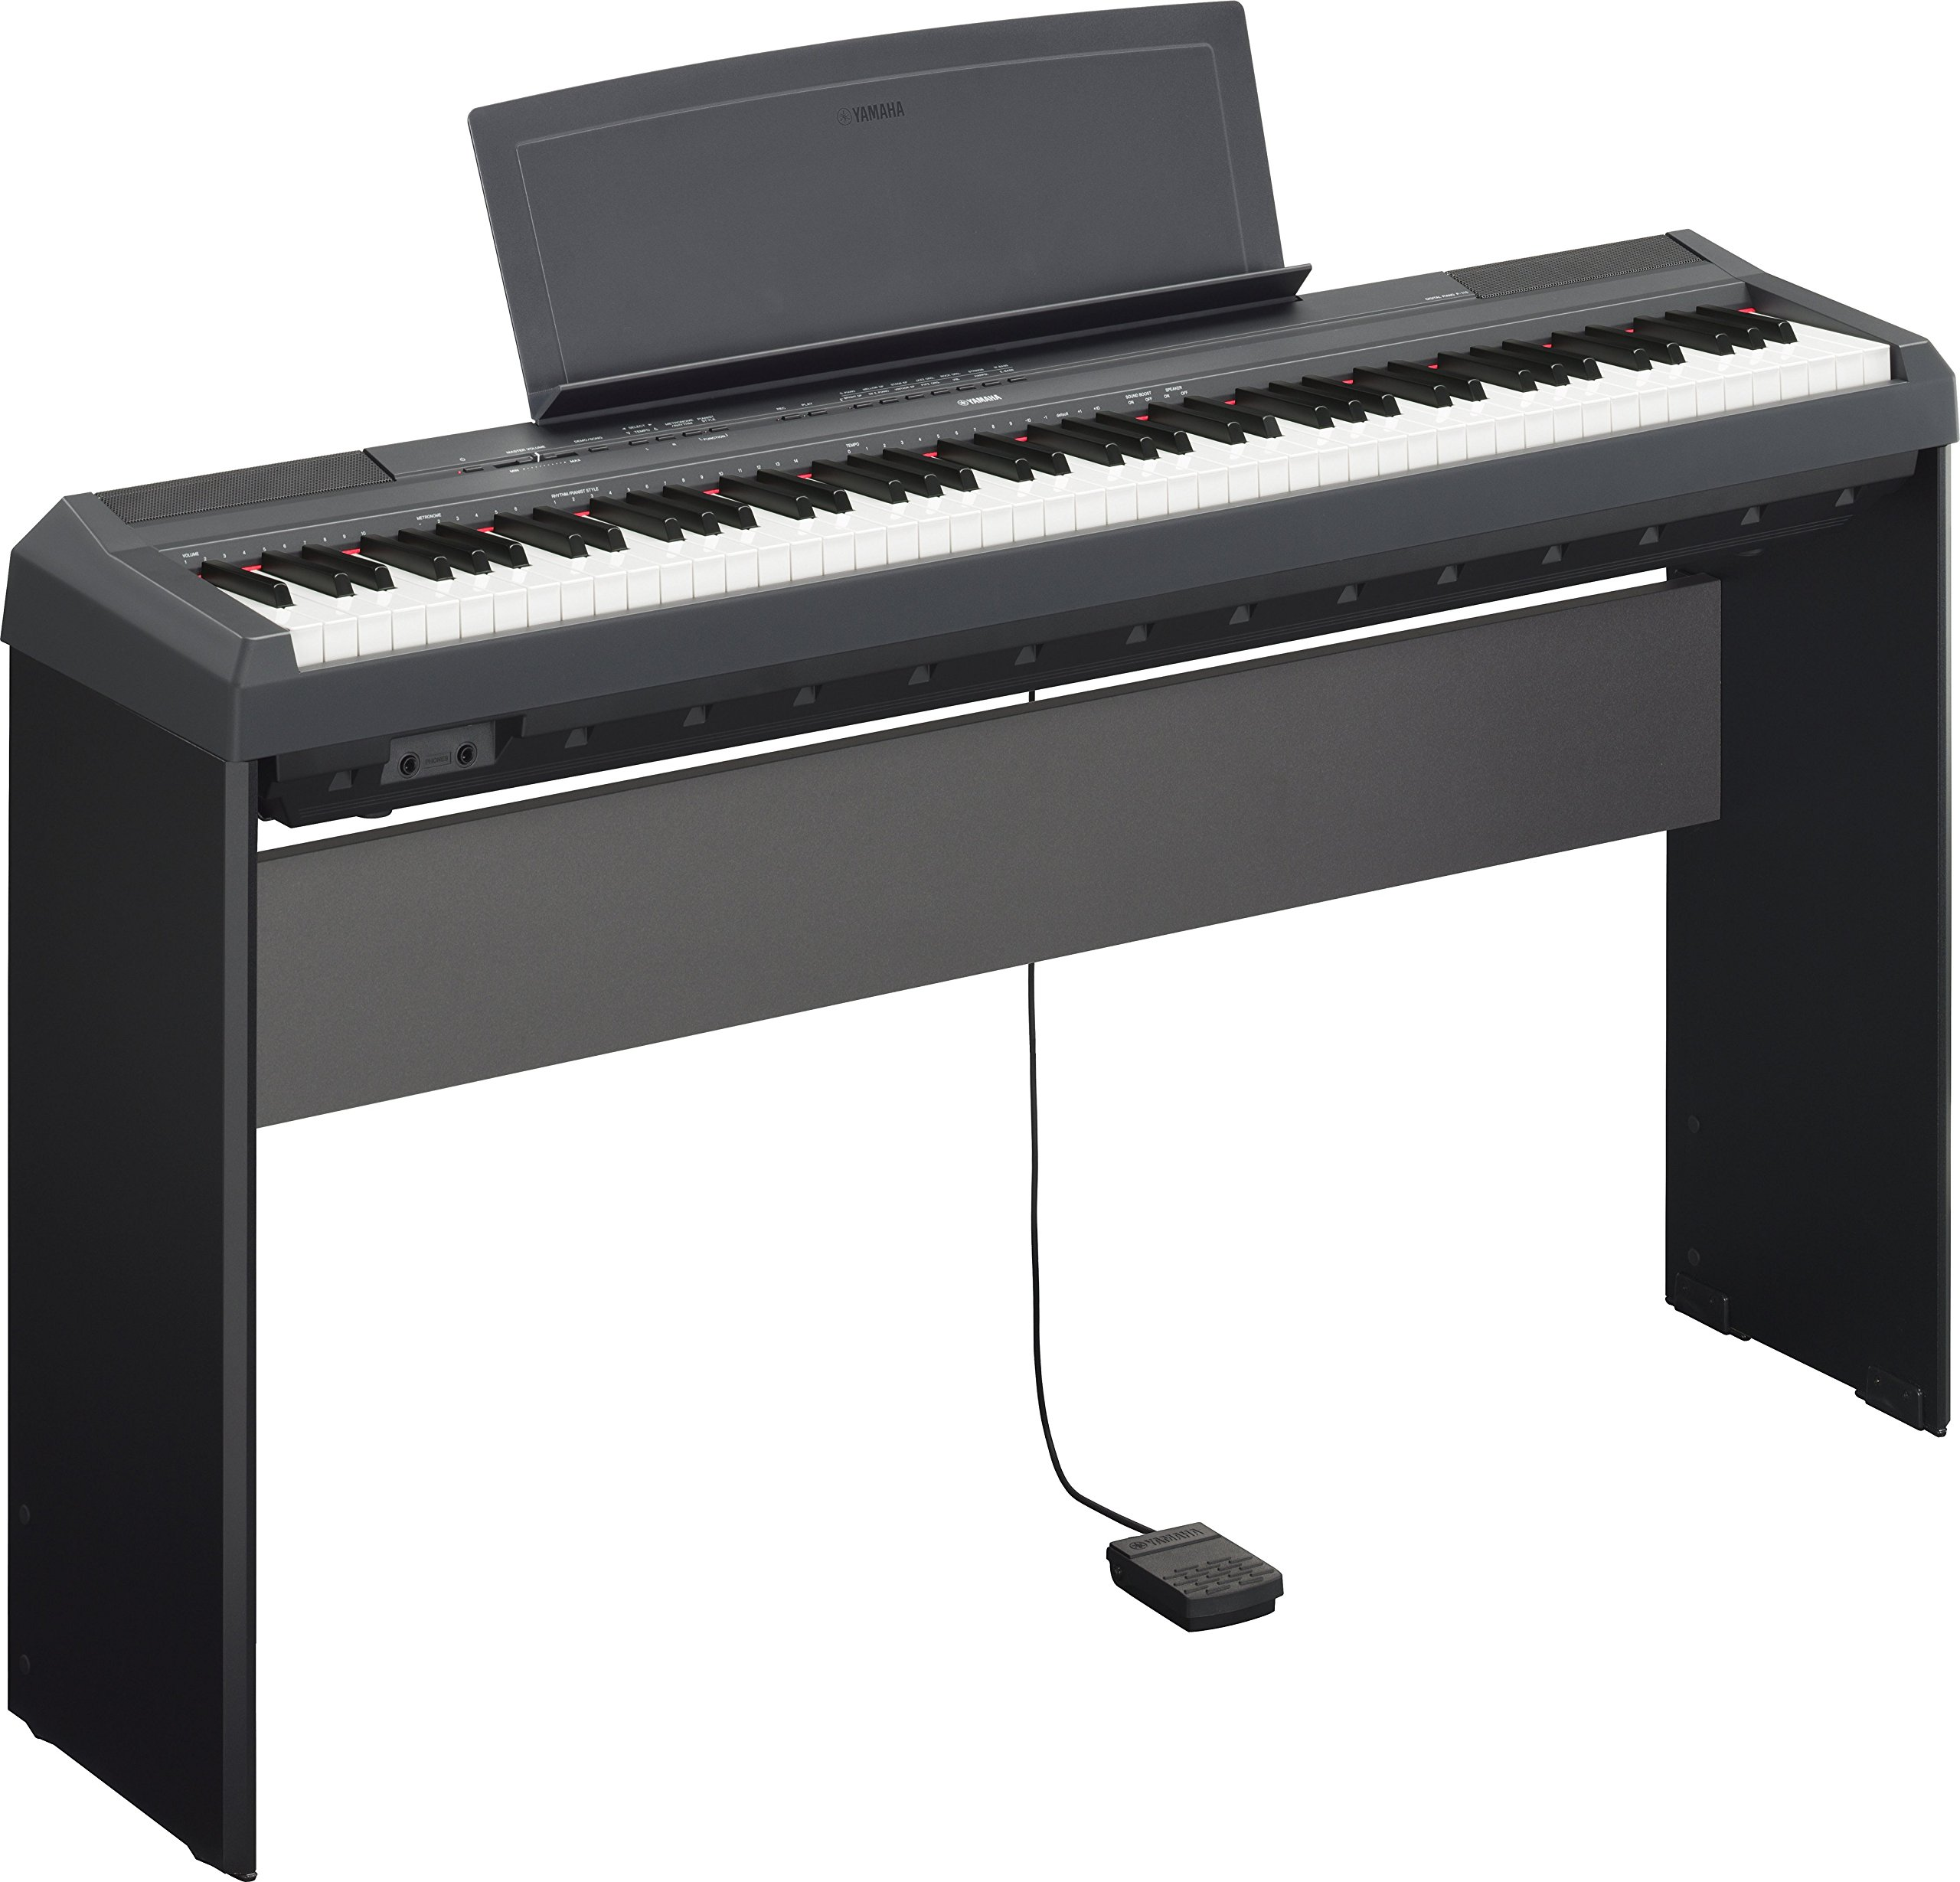 Yamaha P115B 88-Key (GHS) Contemporary Digital Keyboard Piano in Matt Finish Black (Includes Power Adapter, Footswitch Pedal and Music Rest) with Wooden Stand